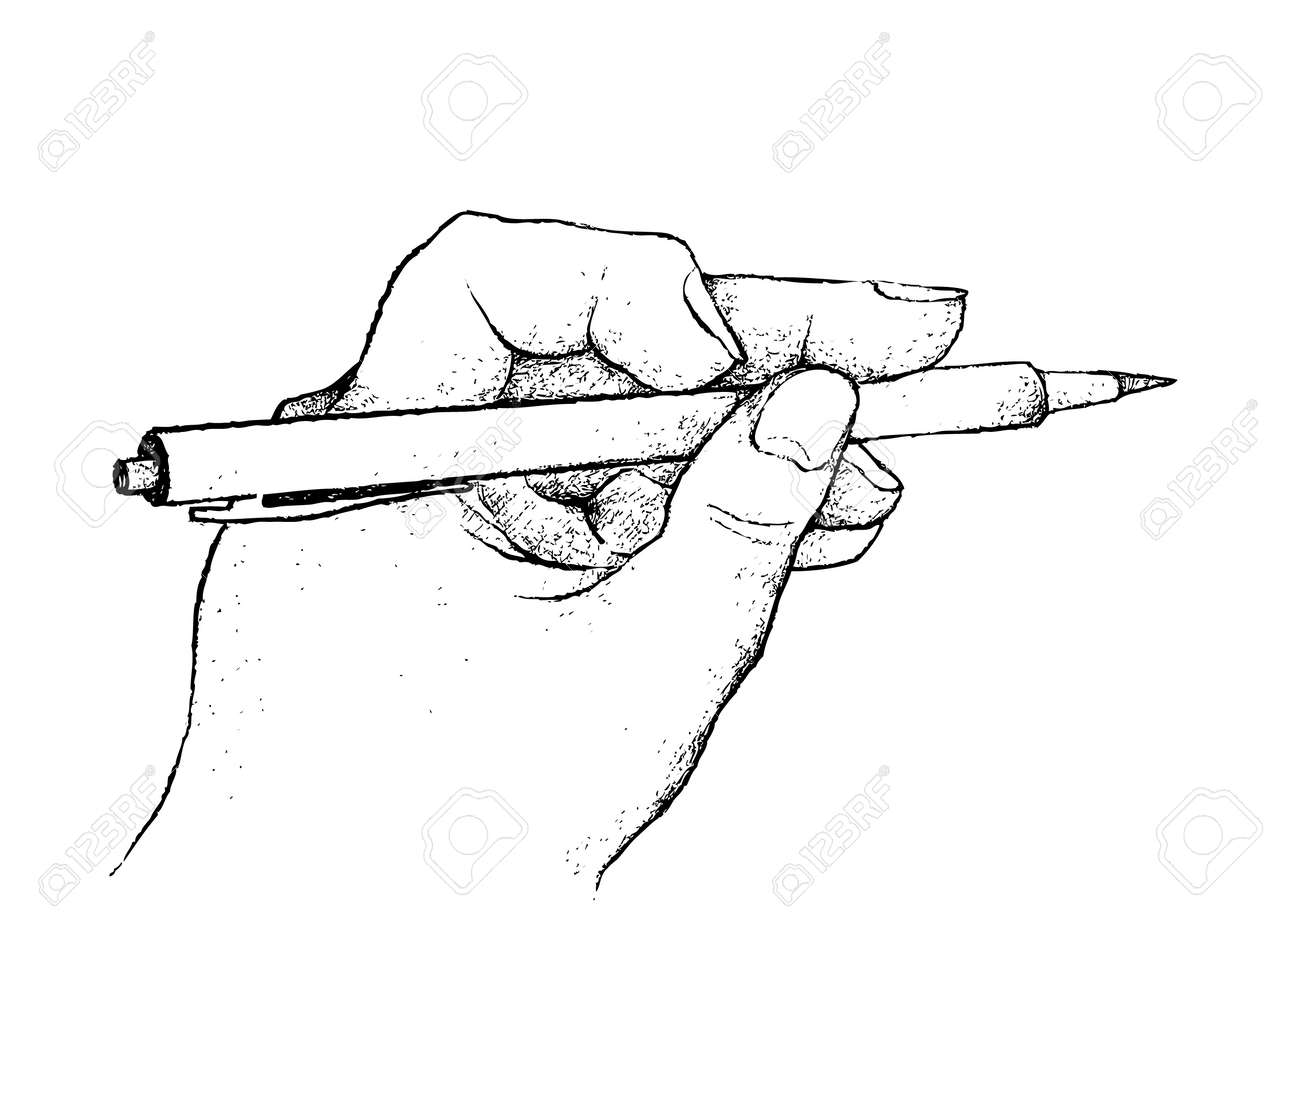 Illustration of hand drawn sketch person holding a pen and planning for sketch write or